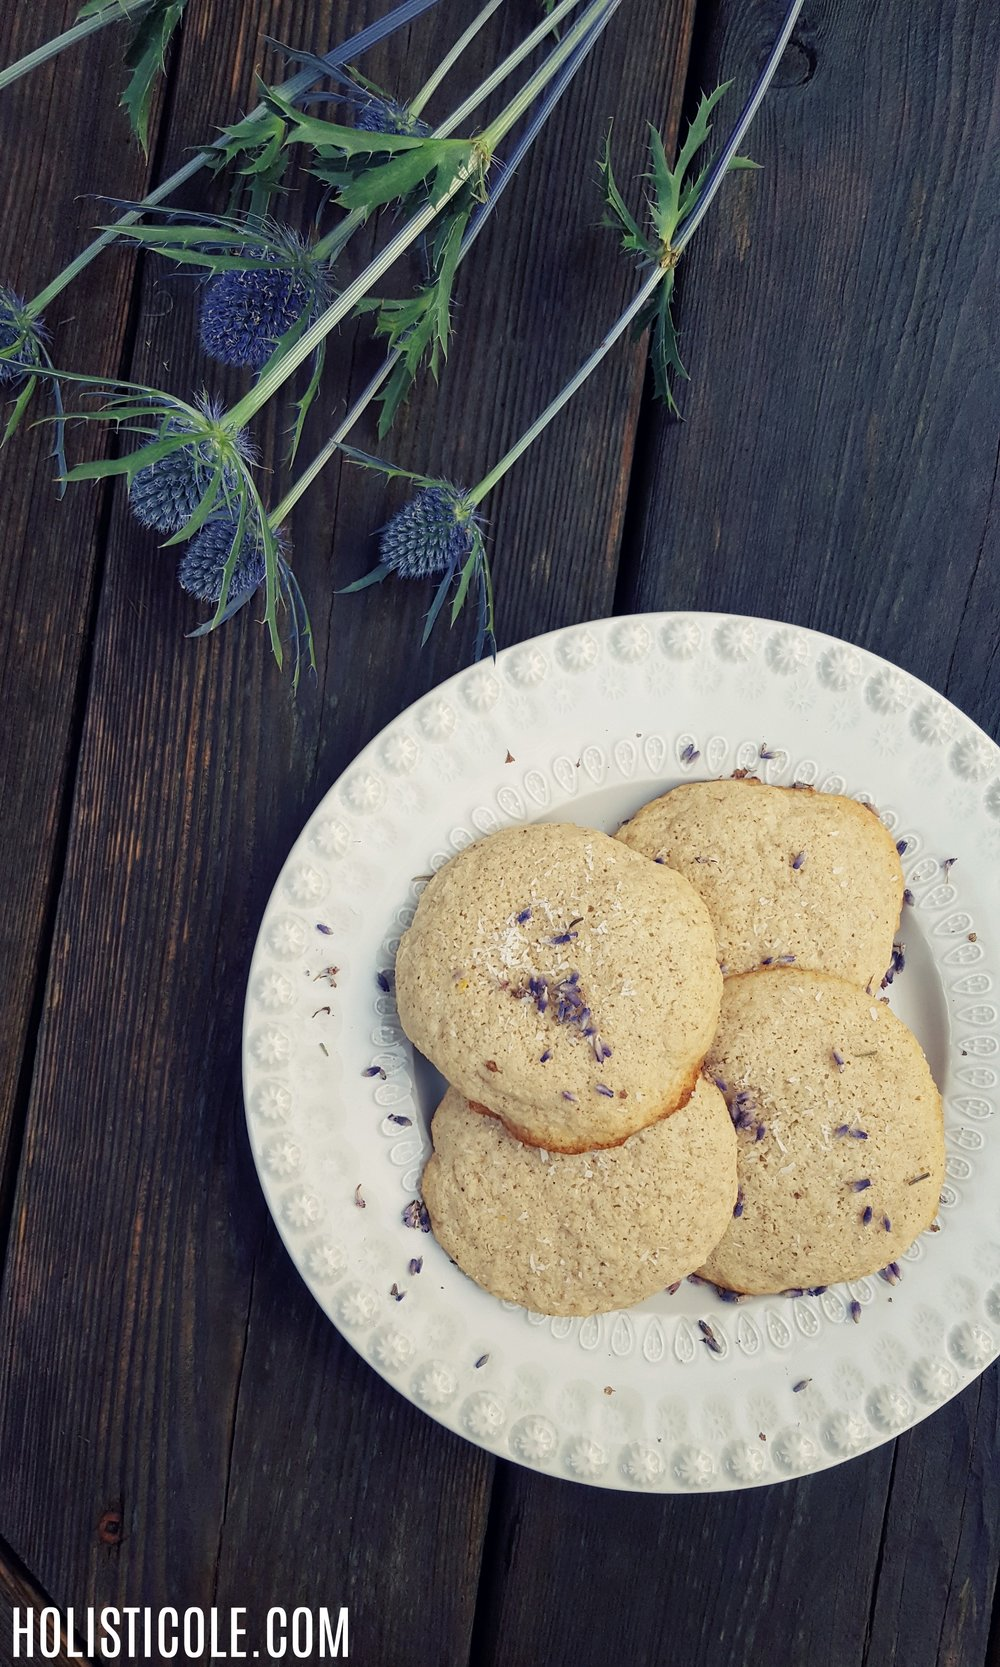 Holisticole - Anti-Anxiety Cookies